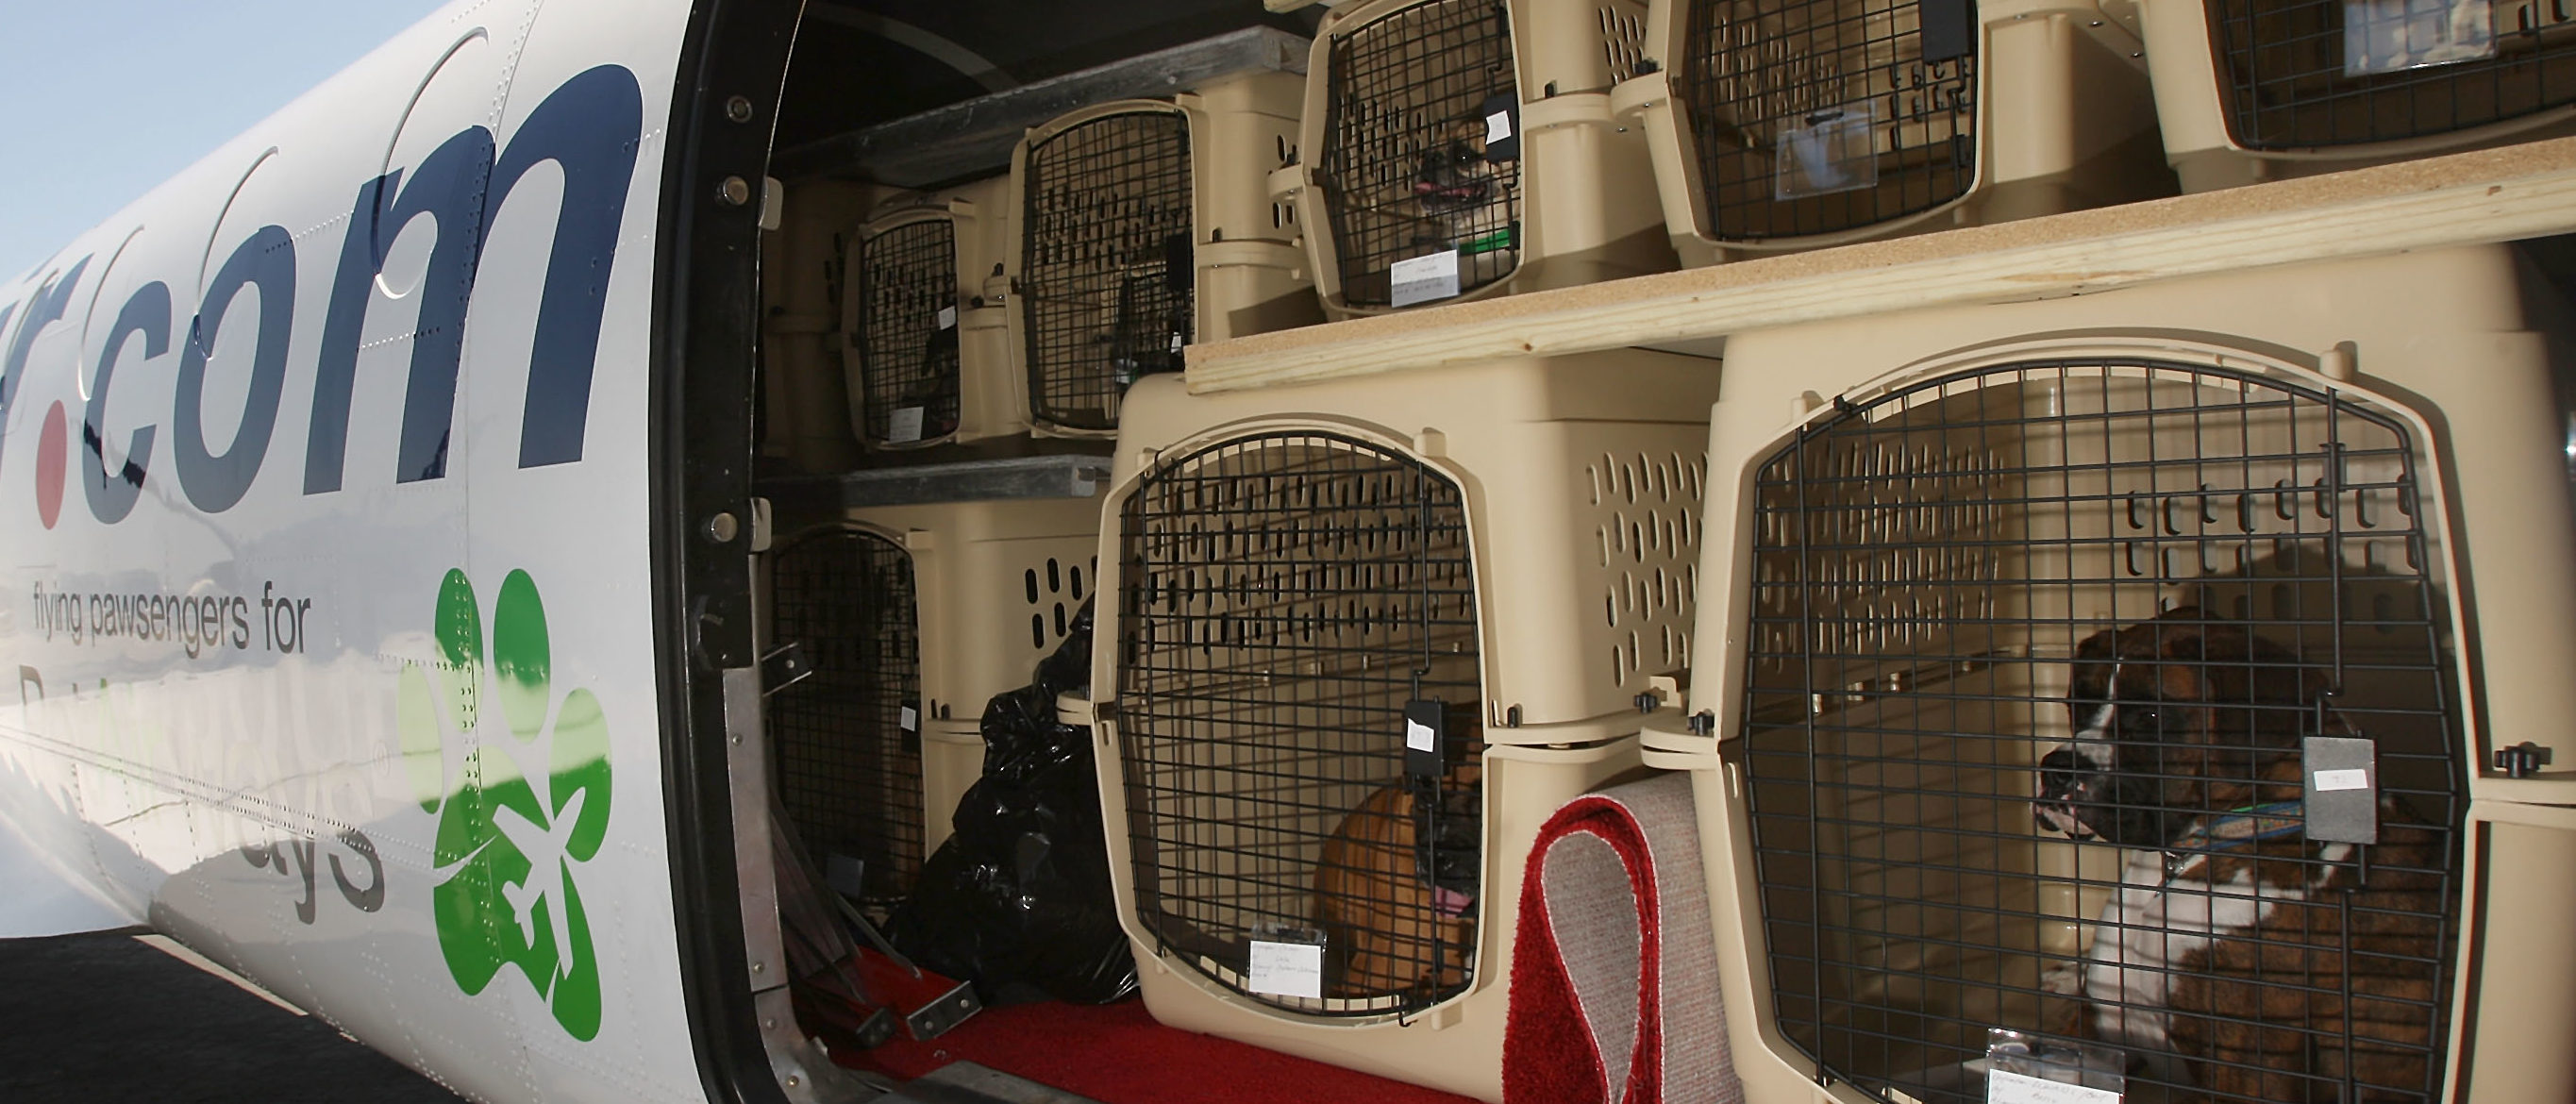 HAWTHORNE, CA - JULY 16: Pets are loaded for take-off on the southern California maiden voyage of Pet Airways on July 16, 2009 in the Los Angeles-area city of Hawthorne, California. The new pets-only airline will operate out of Denver, Chicago, Washington DC, and New York. Pet Airways, based in Delray Beach, Florida, is operating a 19-passenger Beech 1900 aircraft in partnership with Suburban Air Freight with the seats removed to carry up to 50 pets in animal crates per flight. Despite economic hard times for most U.S. businesses, the airline expects to add service to Boston later this year and expand into 25 cities within two years. (Photo by David McNew/Getty Images.